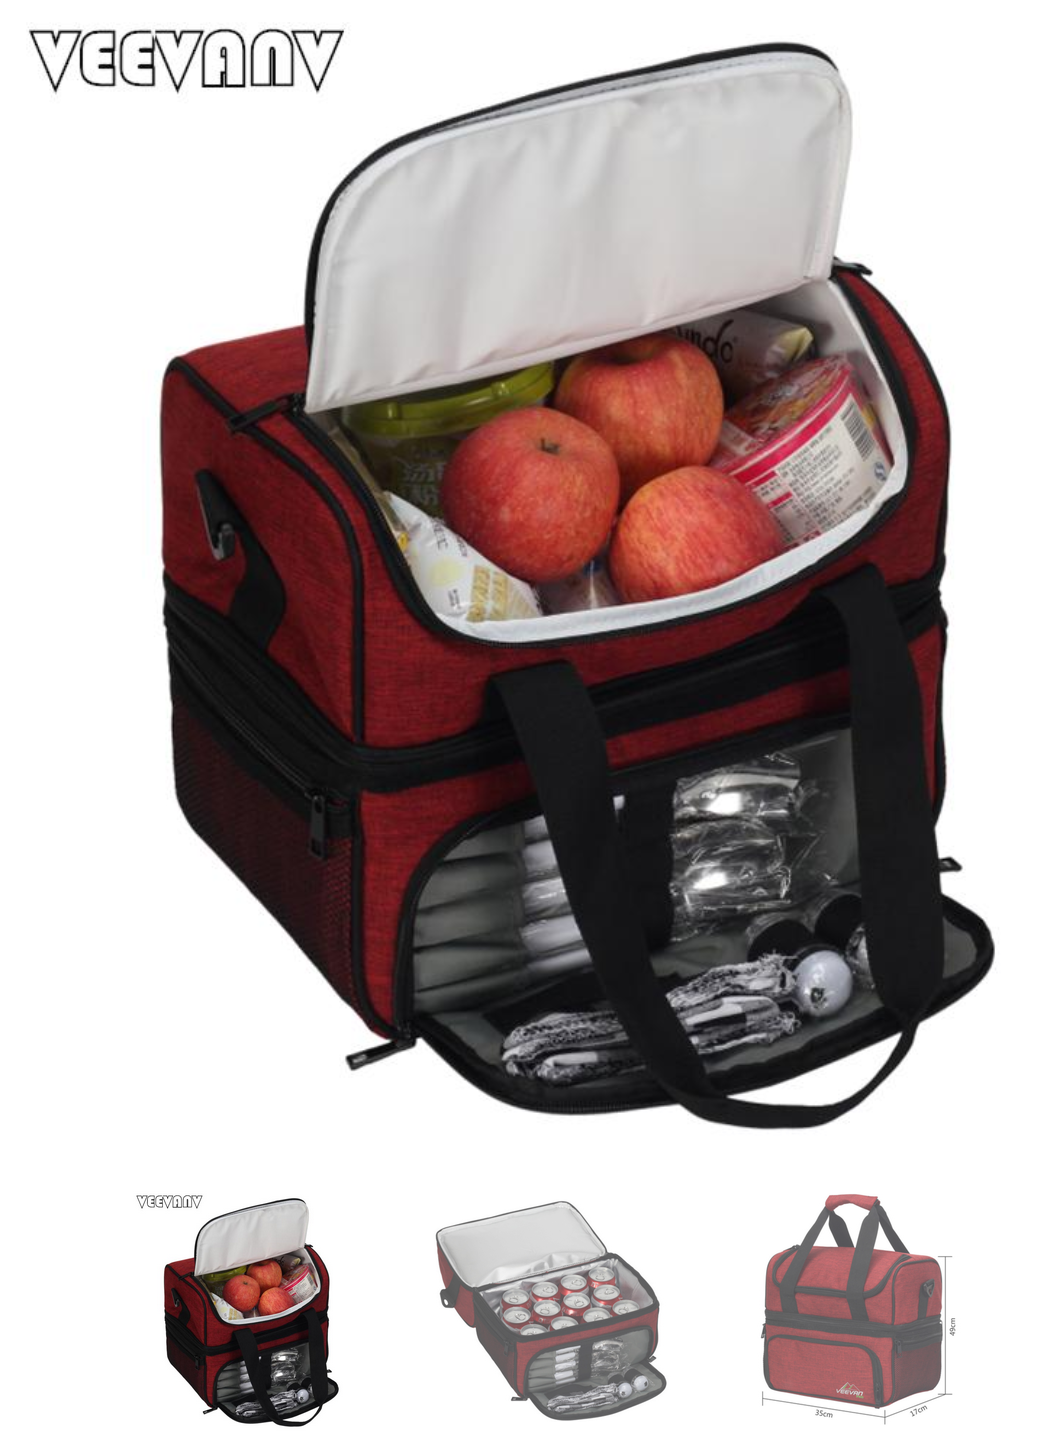 insulated, multi-compartment, tailgating tote bag